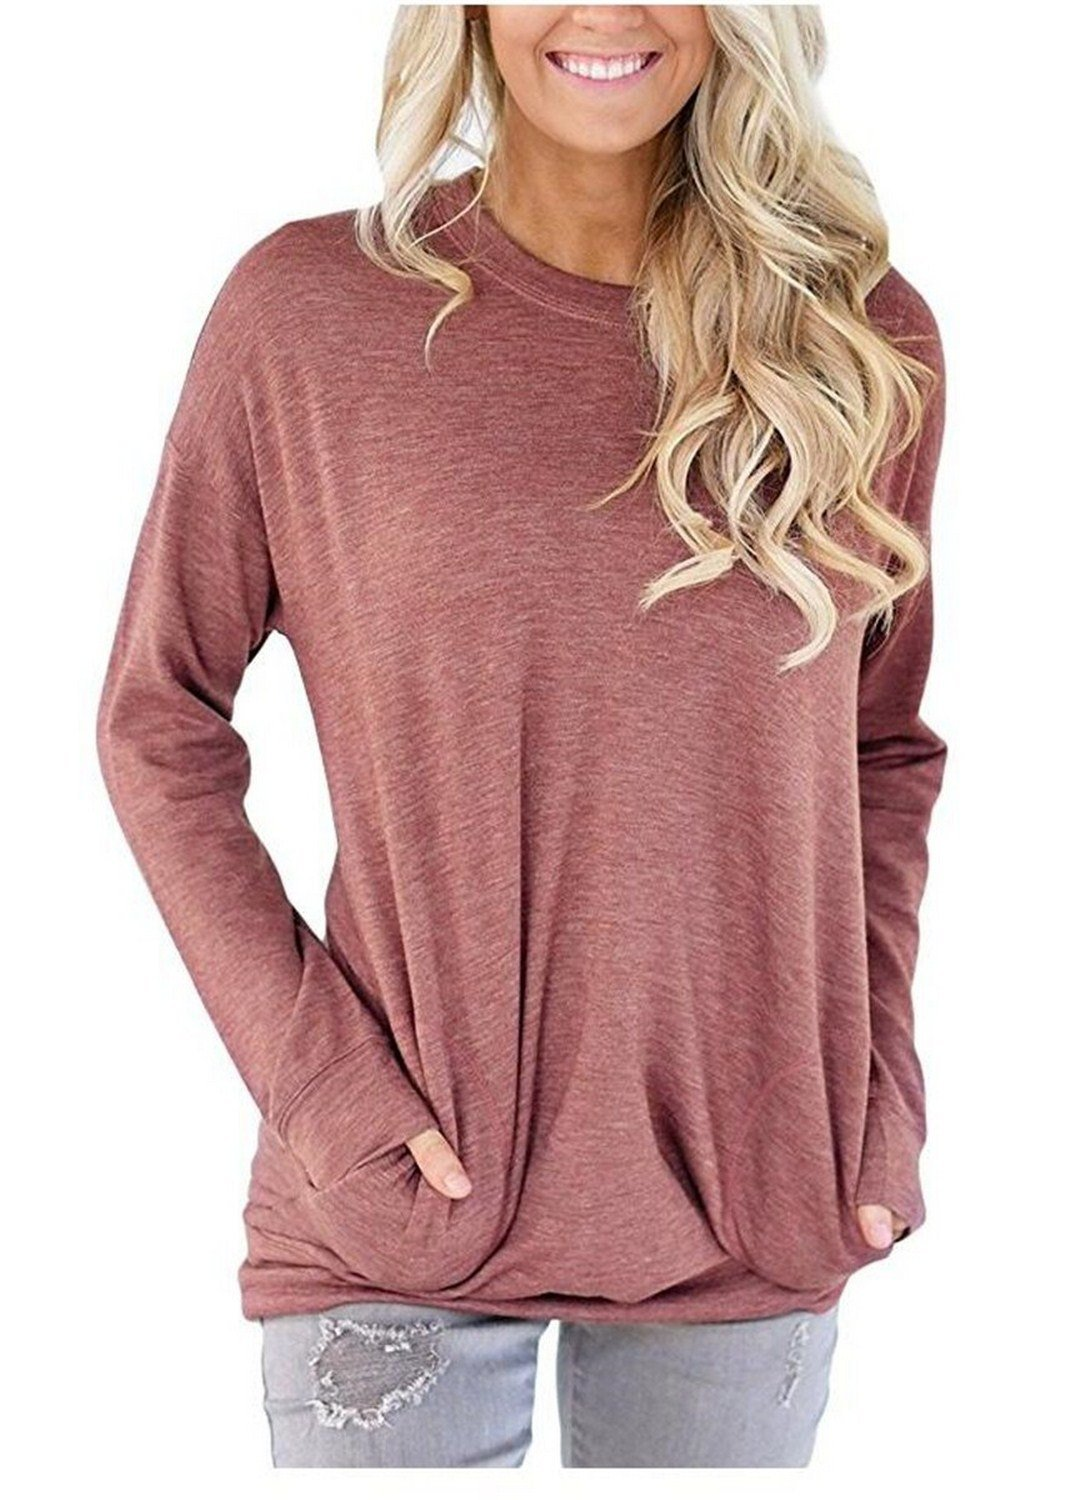 UniDear Women Casual Long Sleeve Round Neck Sweatshirt Loose Blouses Tops with Pocket Wine Red Small by UniDear (Image #1)